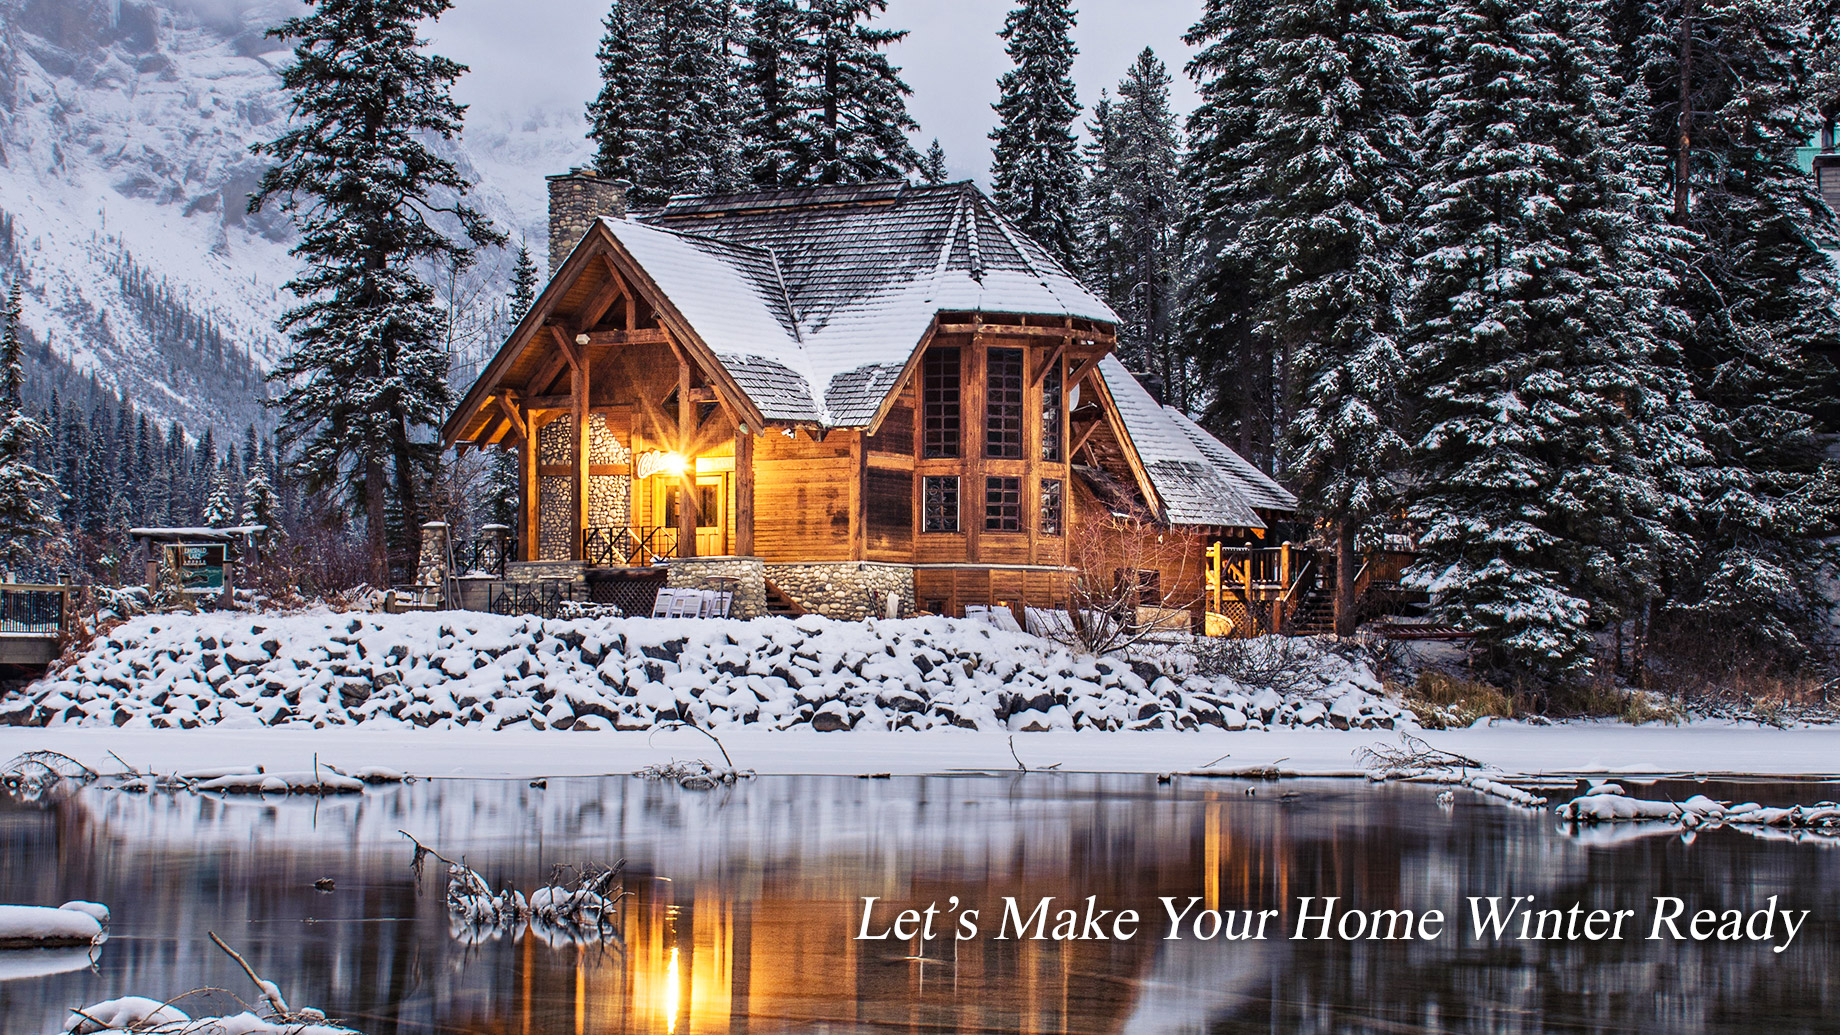 Let's Make Your Home Winter Ready